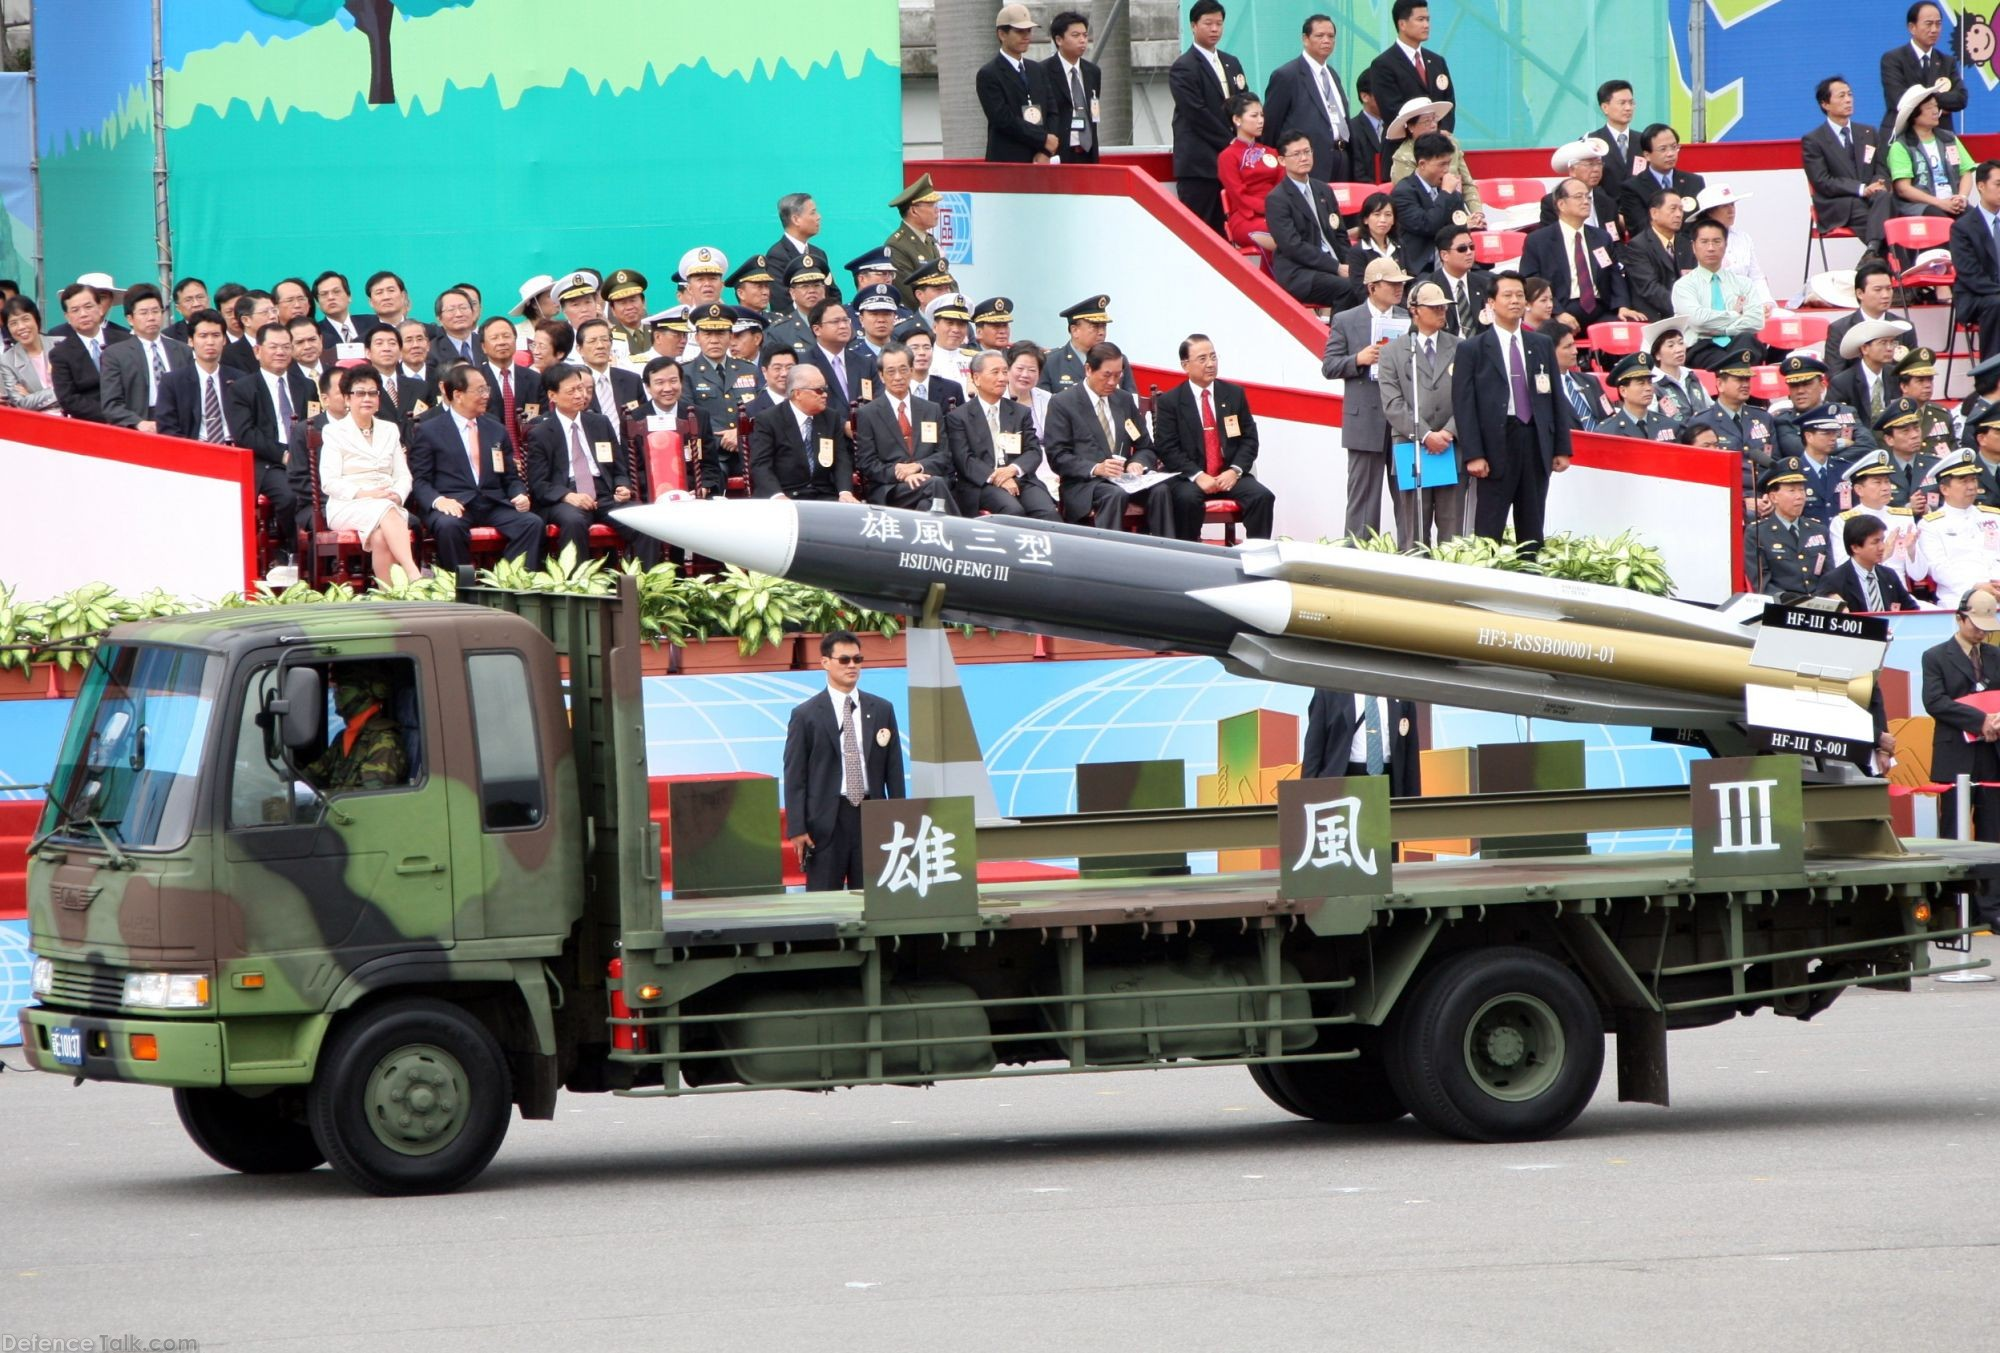 Military Parade - Taiwan Armed Forces